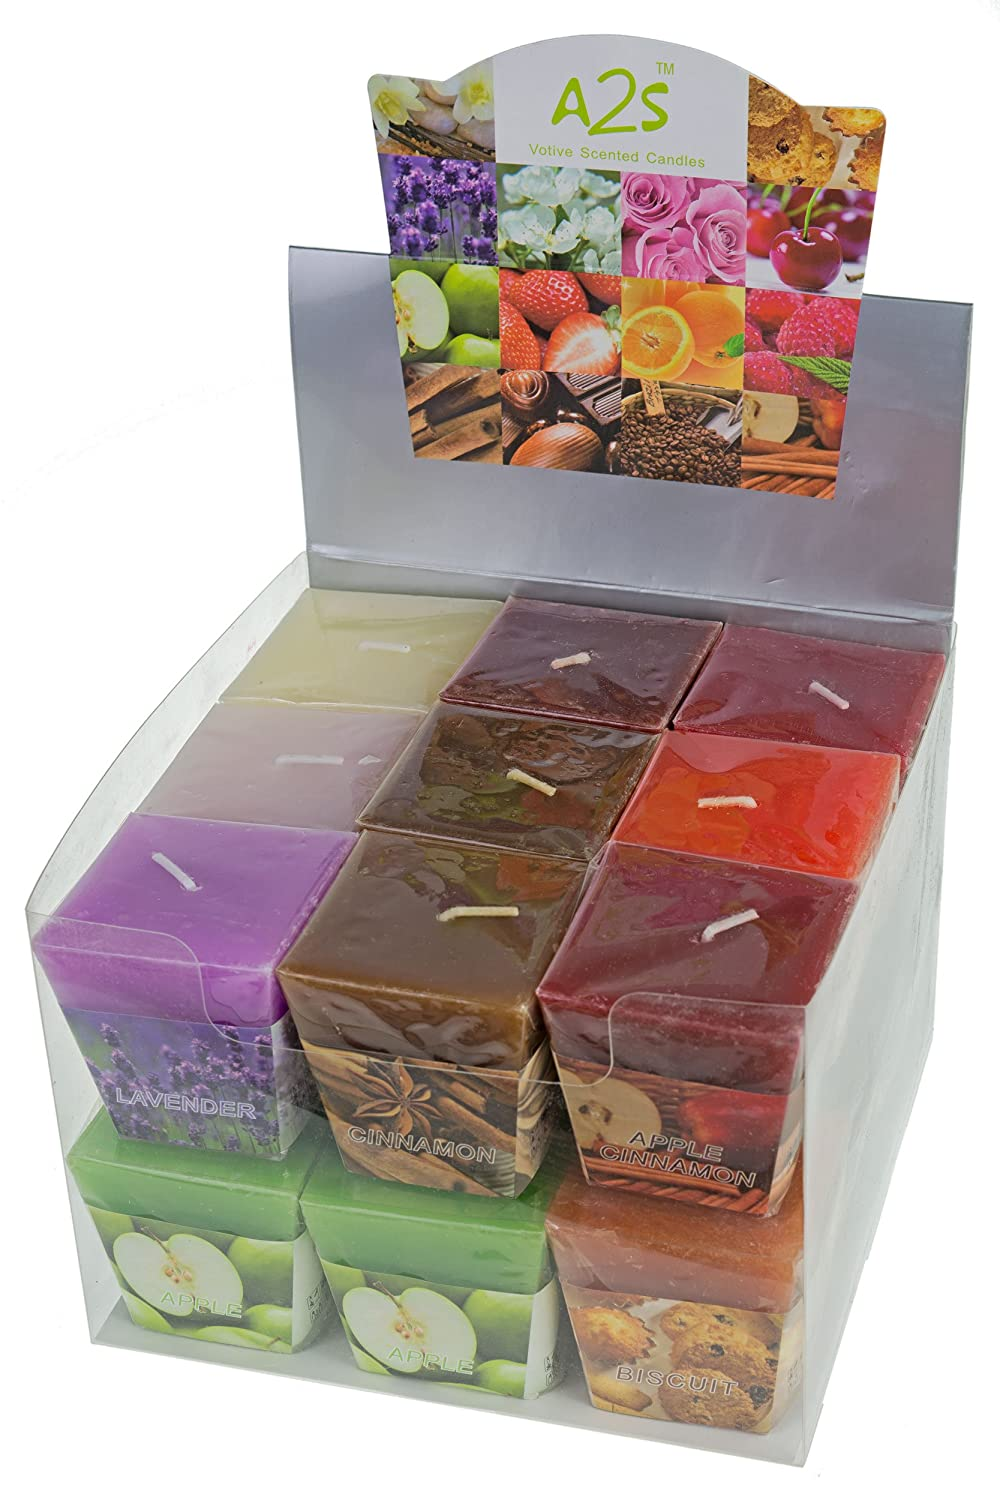 A2S All2shop Scented Votive Candles Set of 18 Assorted Pure Scents for Relaxation /& Aromatherapy 18 Assorted Scents, Normal